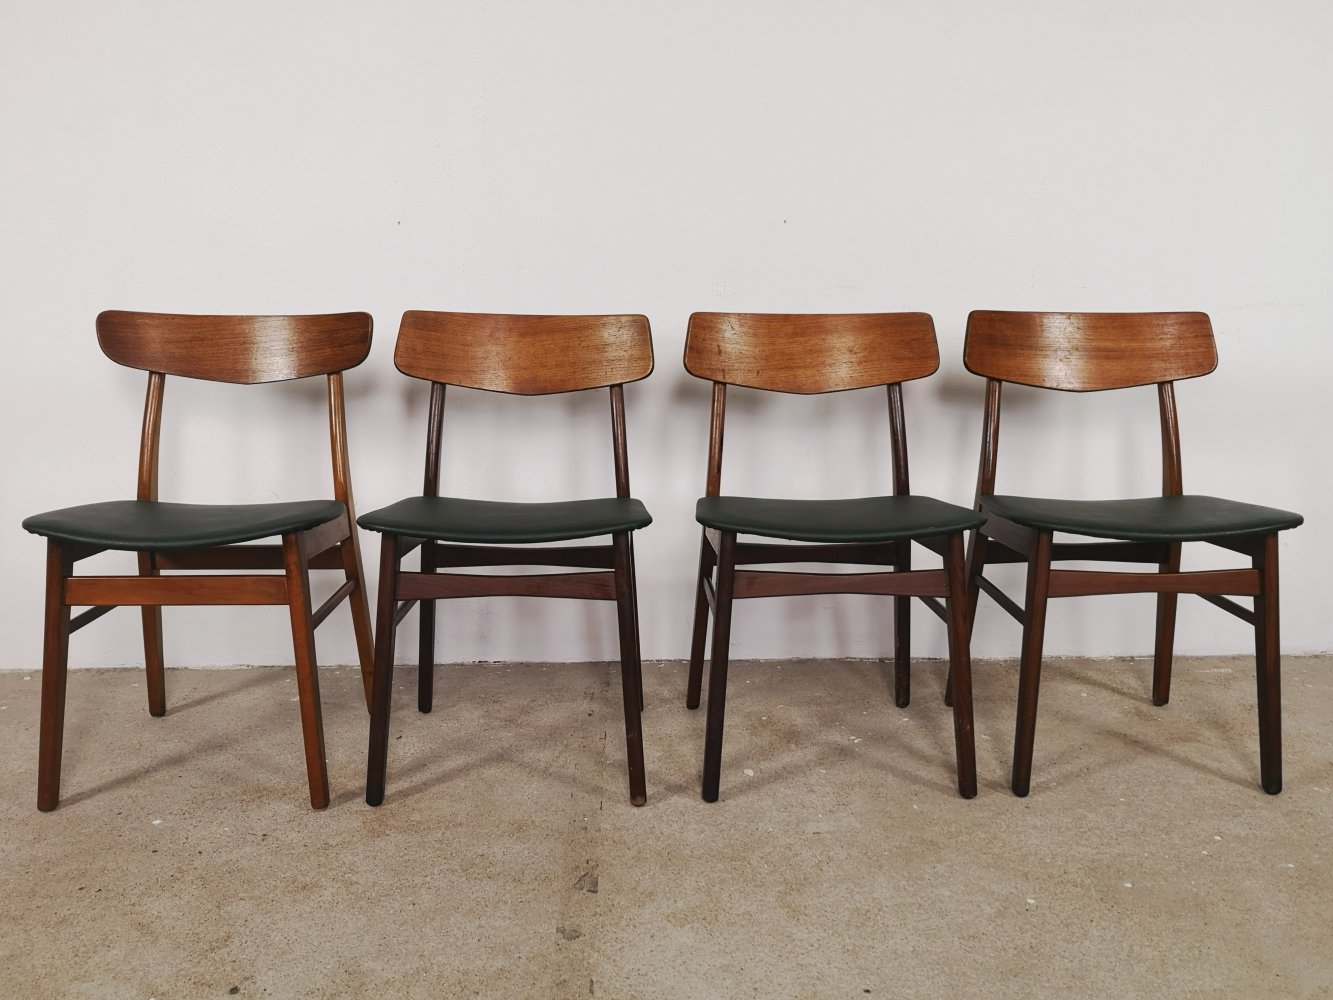 4x Farstrup chairs with dark green seats